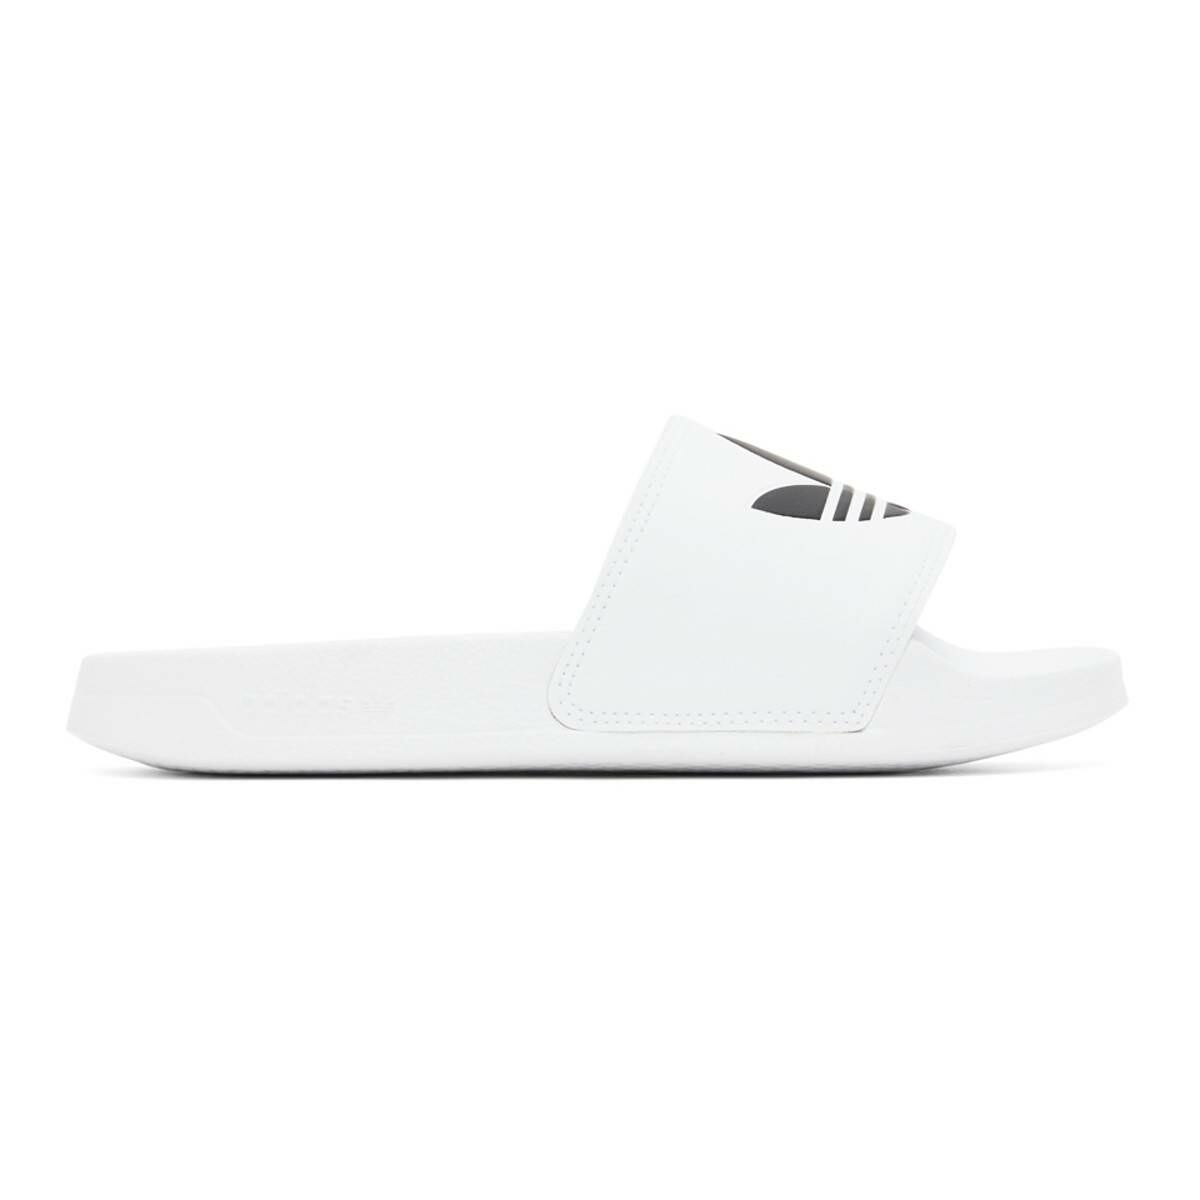 adidas Originals White Adilette Lite Pool Slides Ssense USA MEN Men SHOES Mens SANDALS